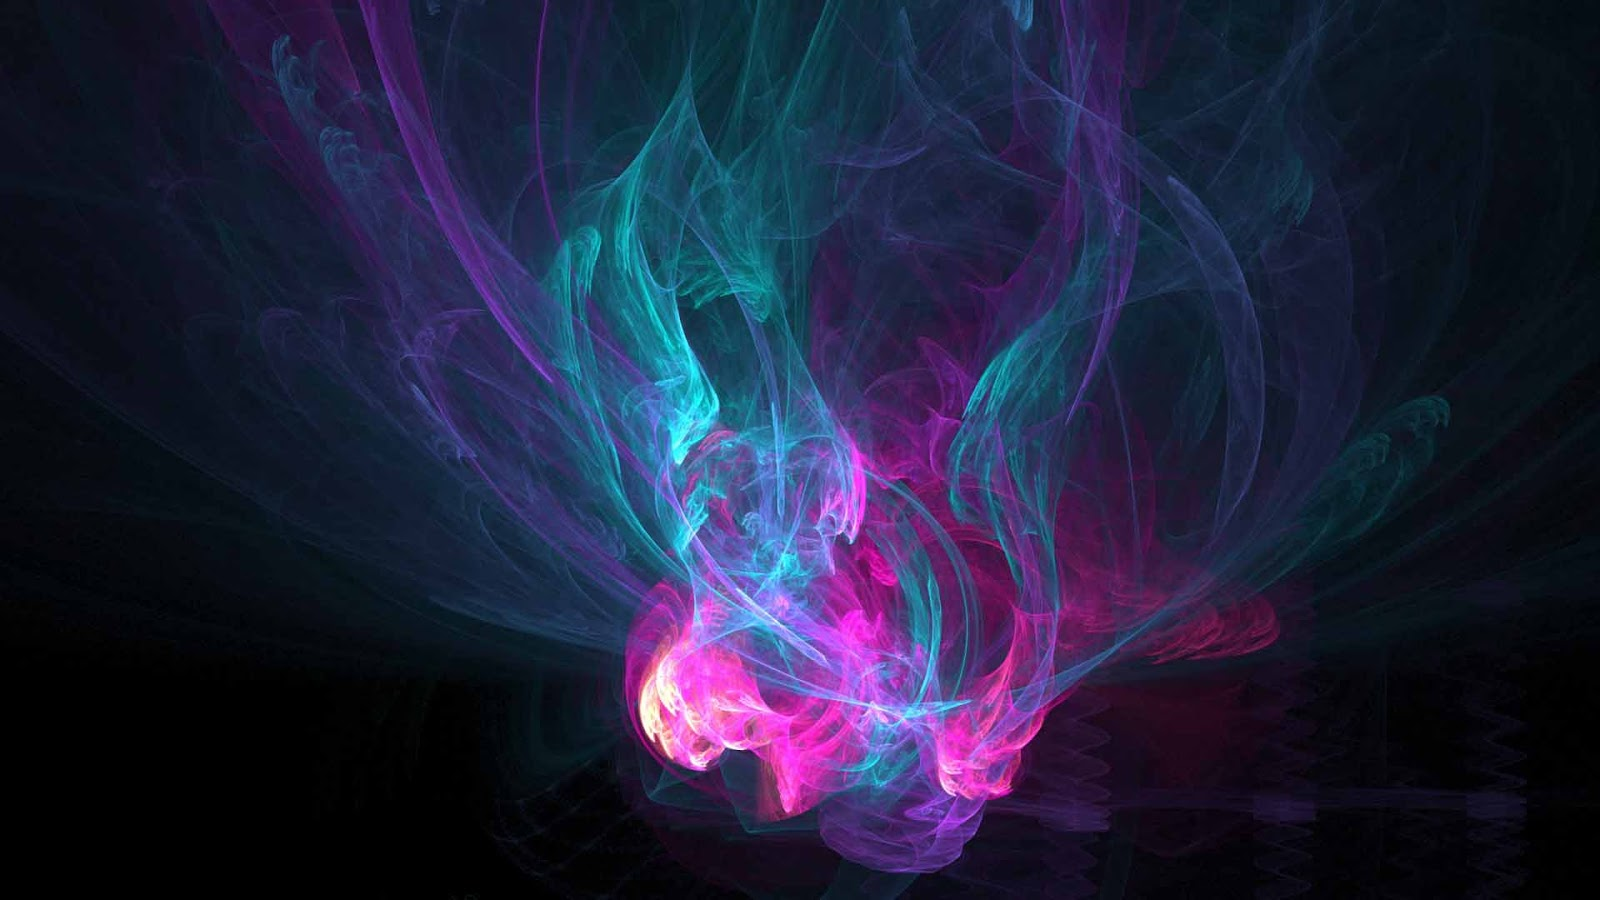 . Violet Smoke Art Wallpapers   W a l l p a p e r2014